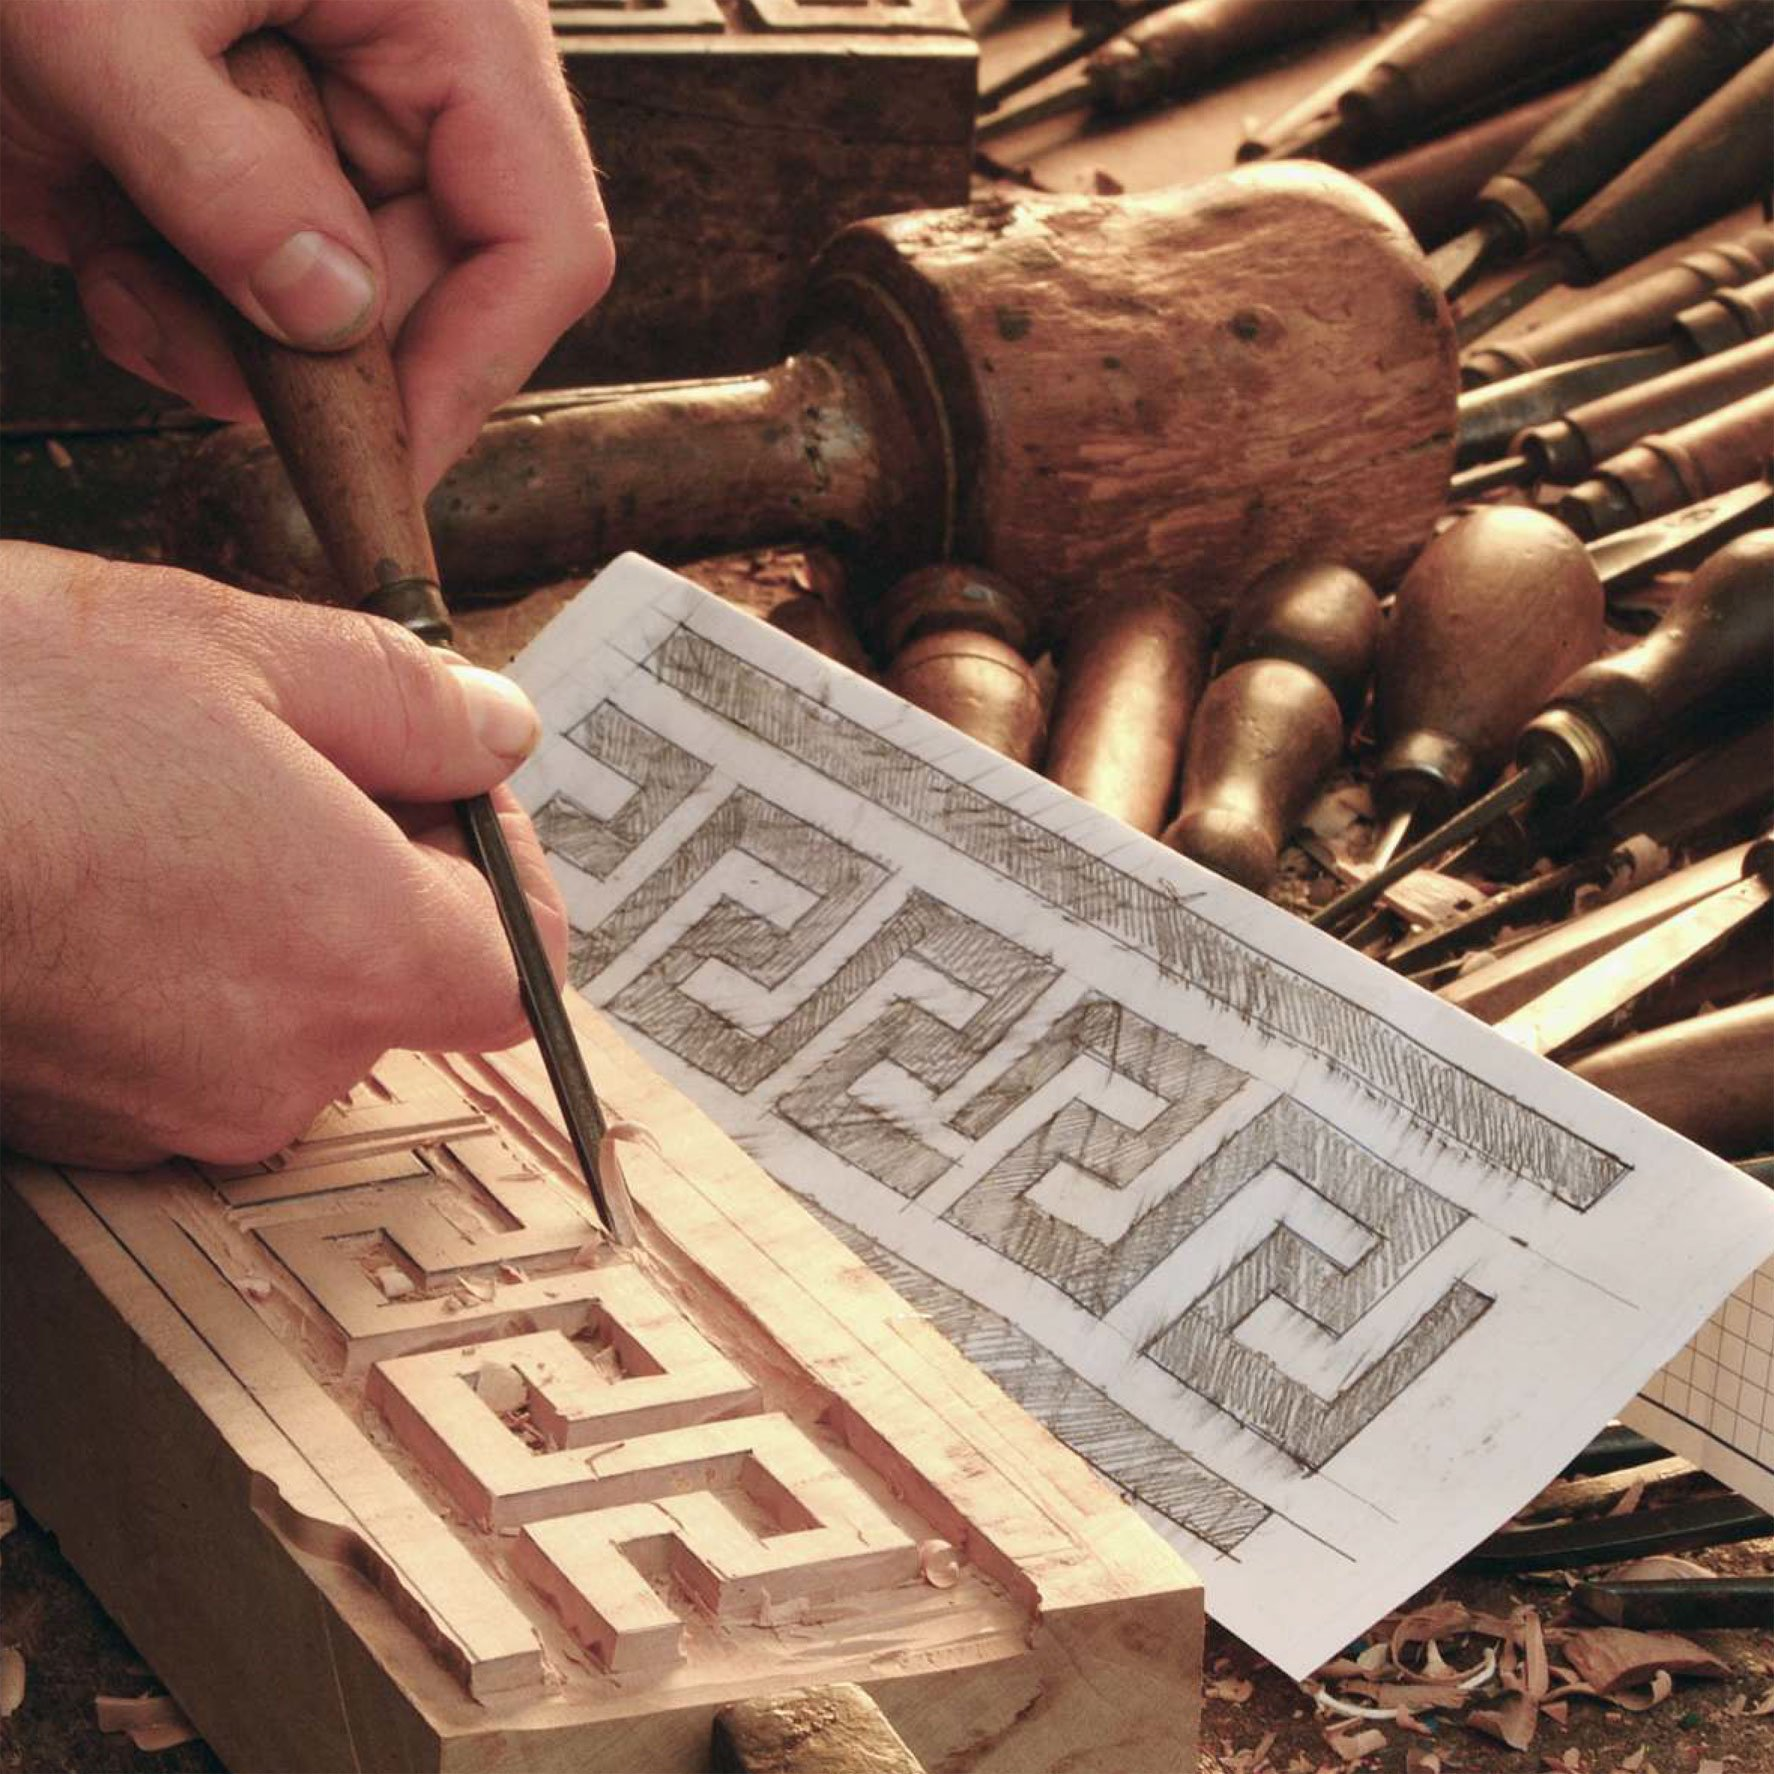 Hand-carving a wooden block for stamping